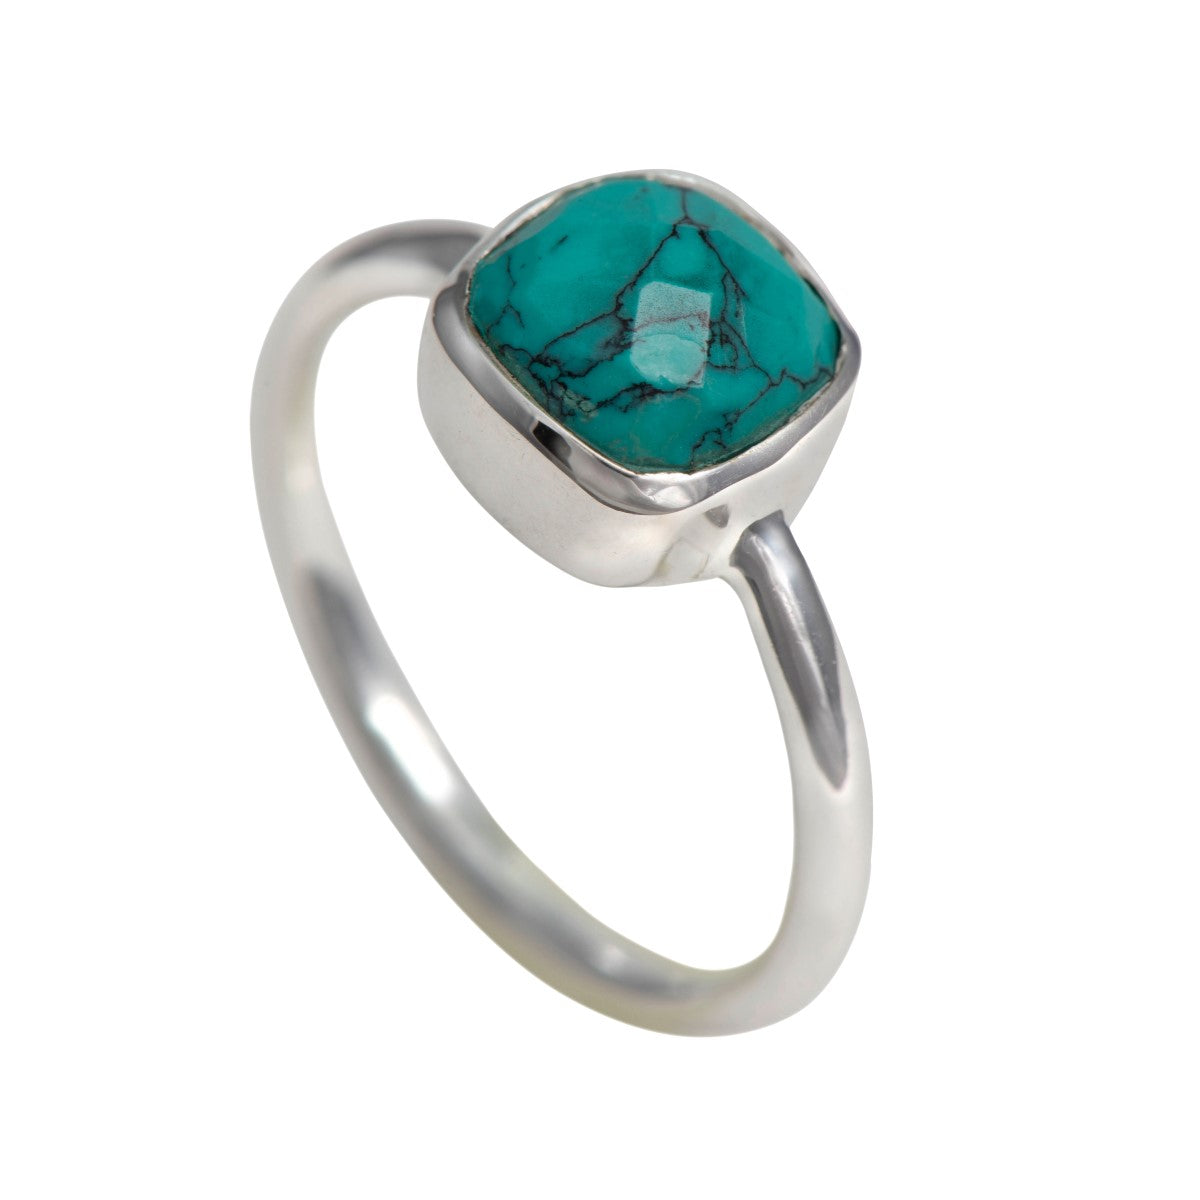 Faceted Square Cut Natural Gemstone Sterling Silver Solitaire Ring - Turquoise